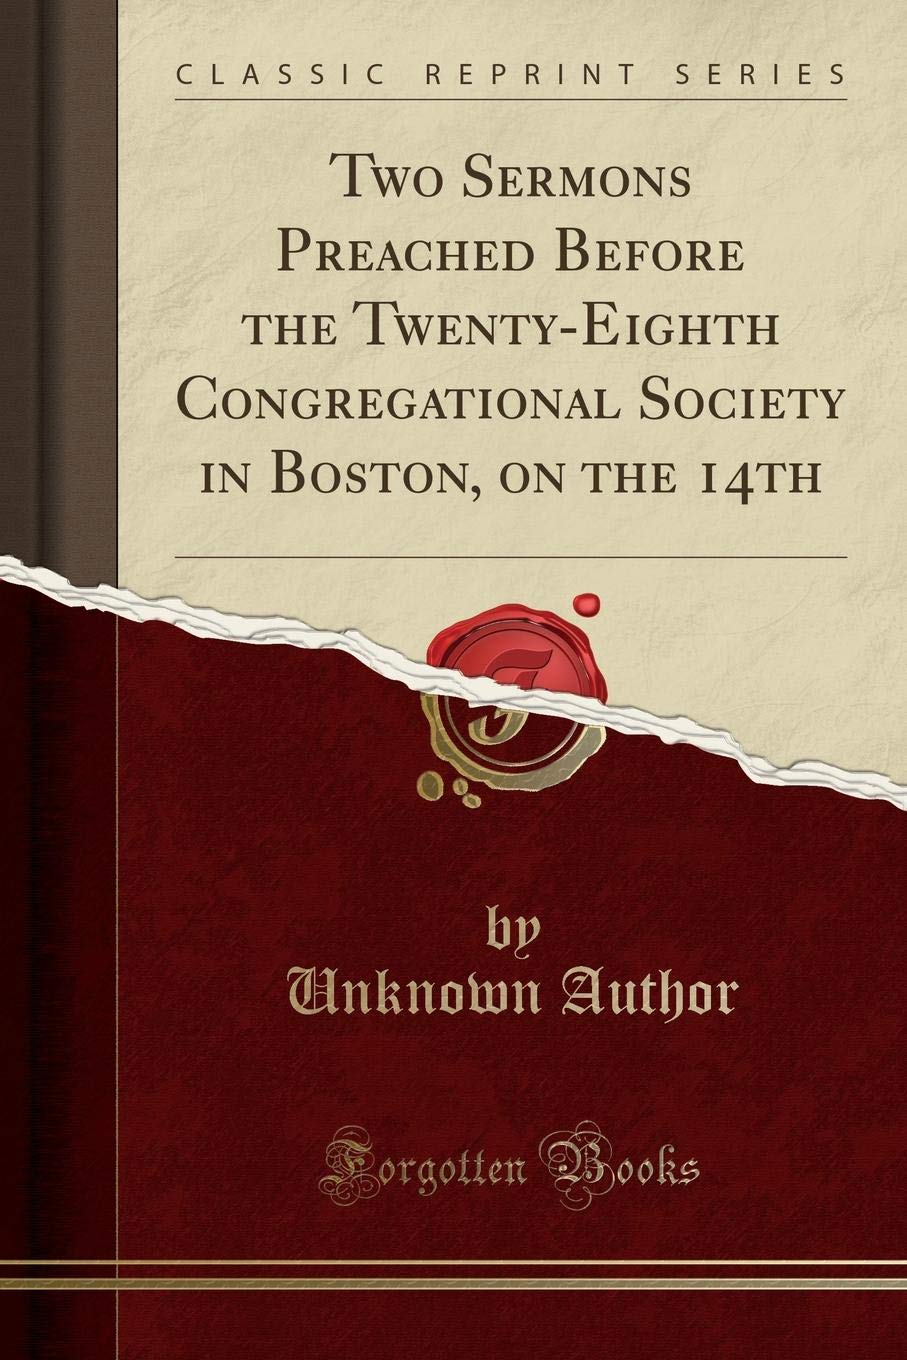 Download Two Sermons Preached Before the Twenty-Eighth Congregational Society in Boston, on the 14th (Classic Reprint) pdf